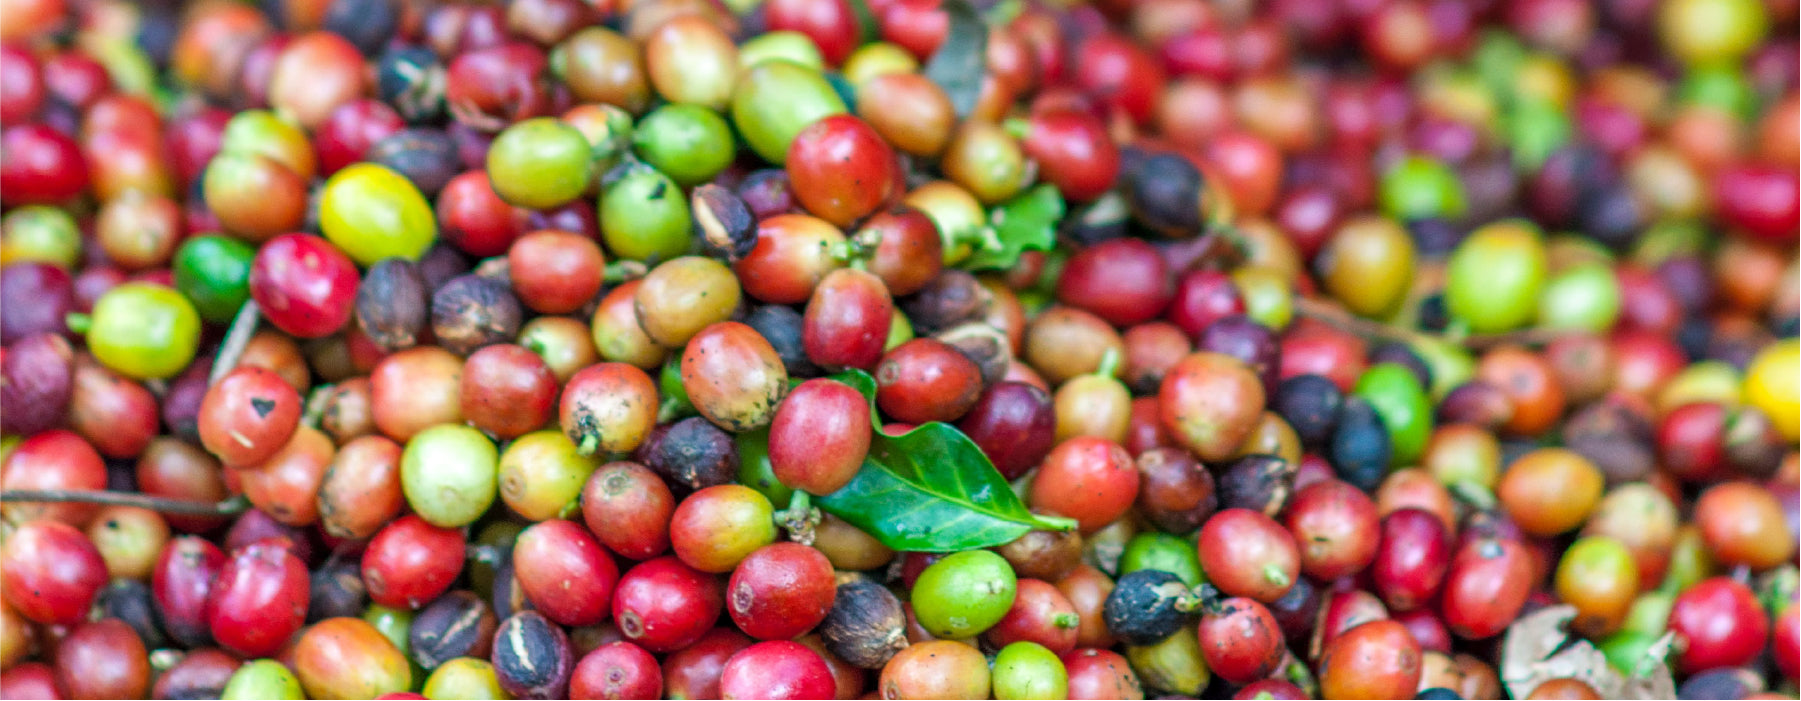 Coffee Life Blog by EspressoWorks - Farm to Machine: Learn How Coffee Is Made